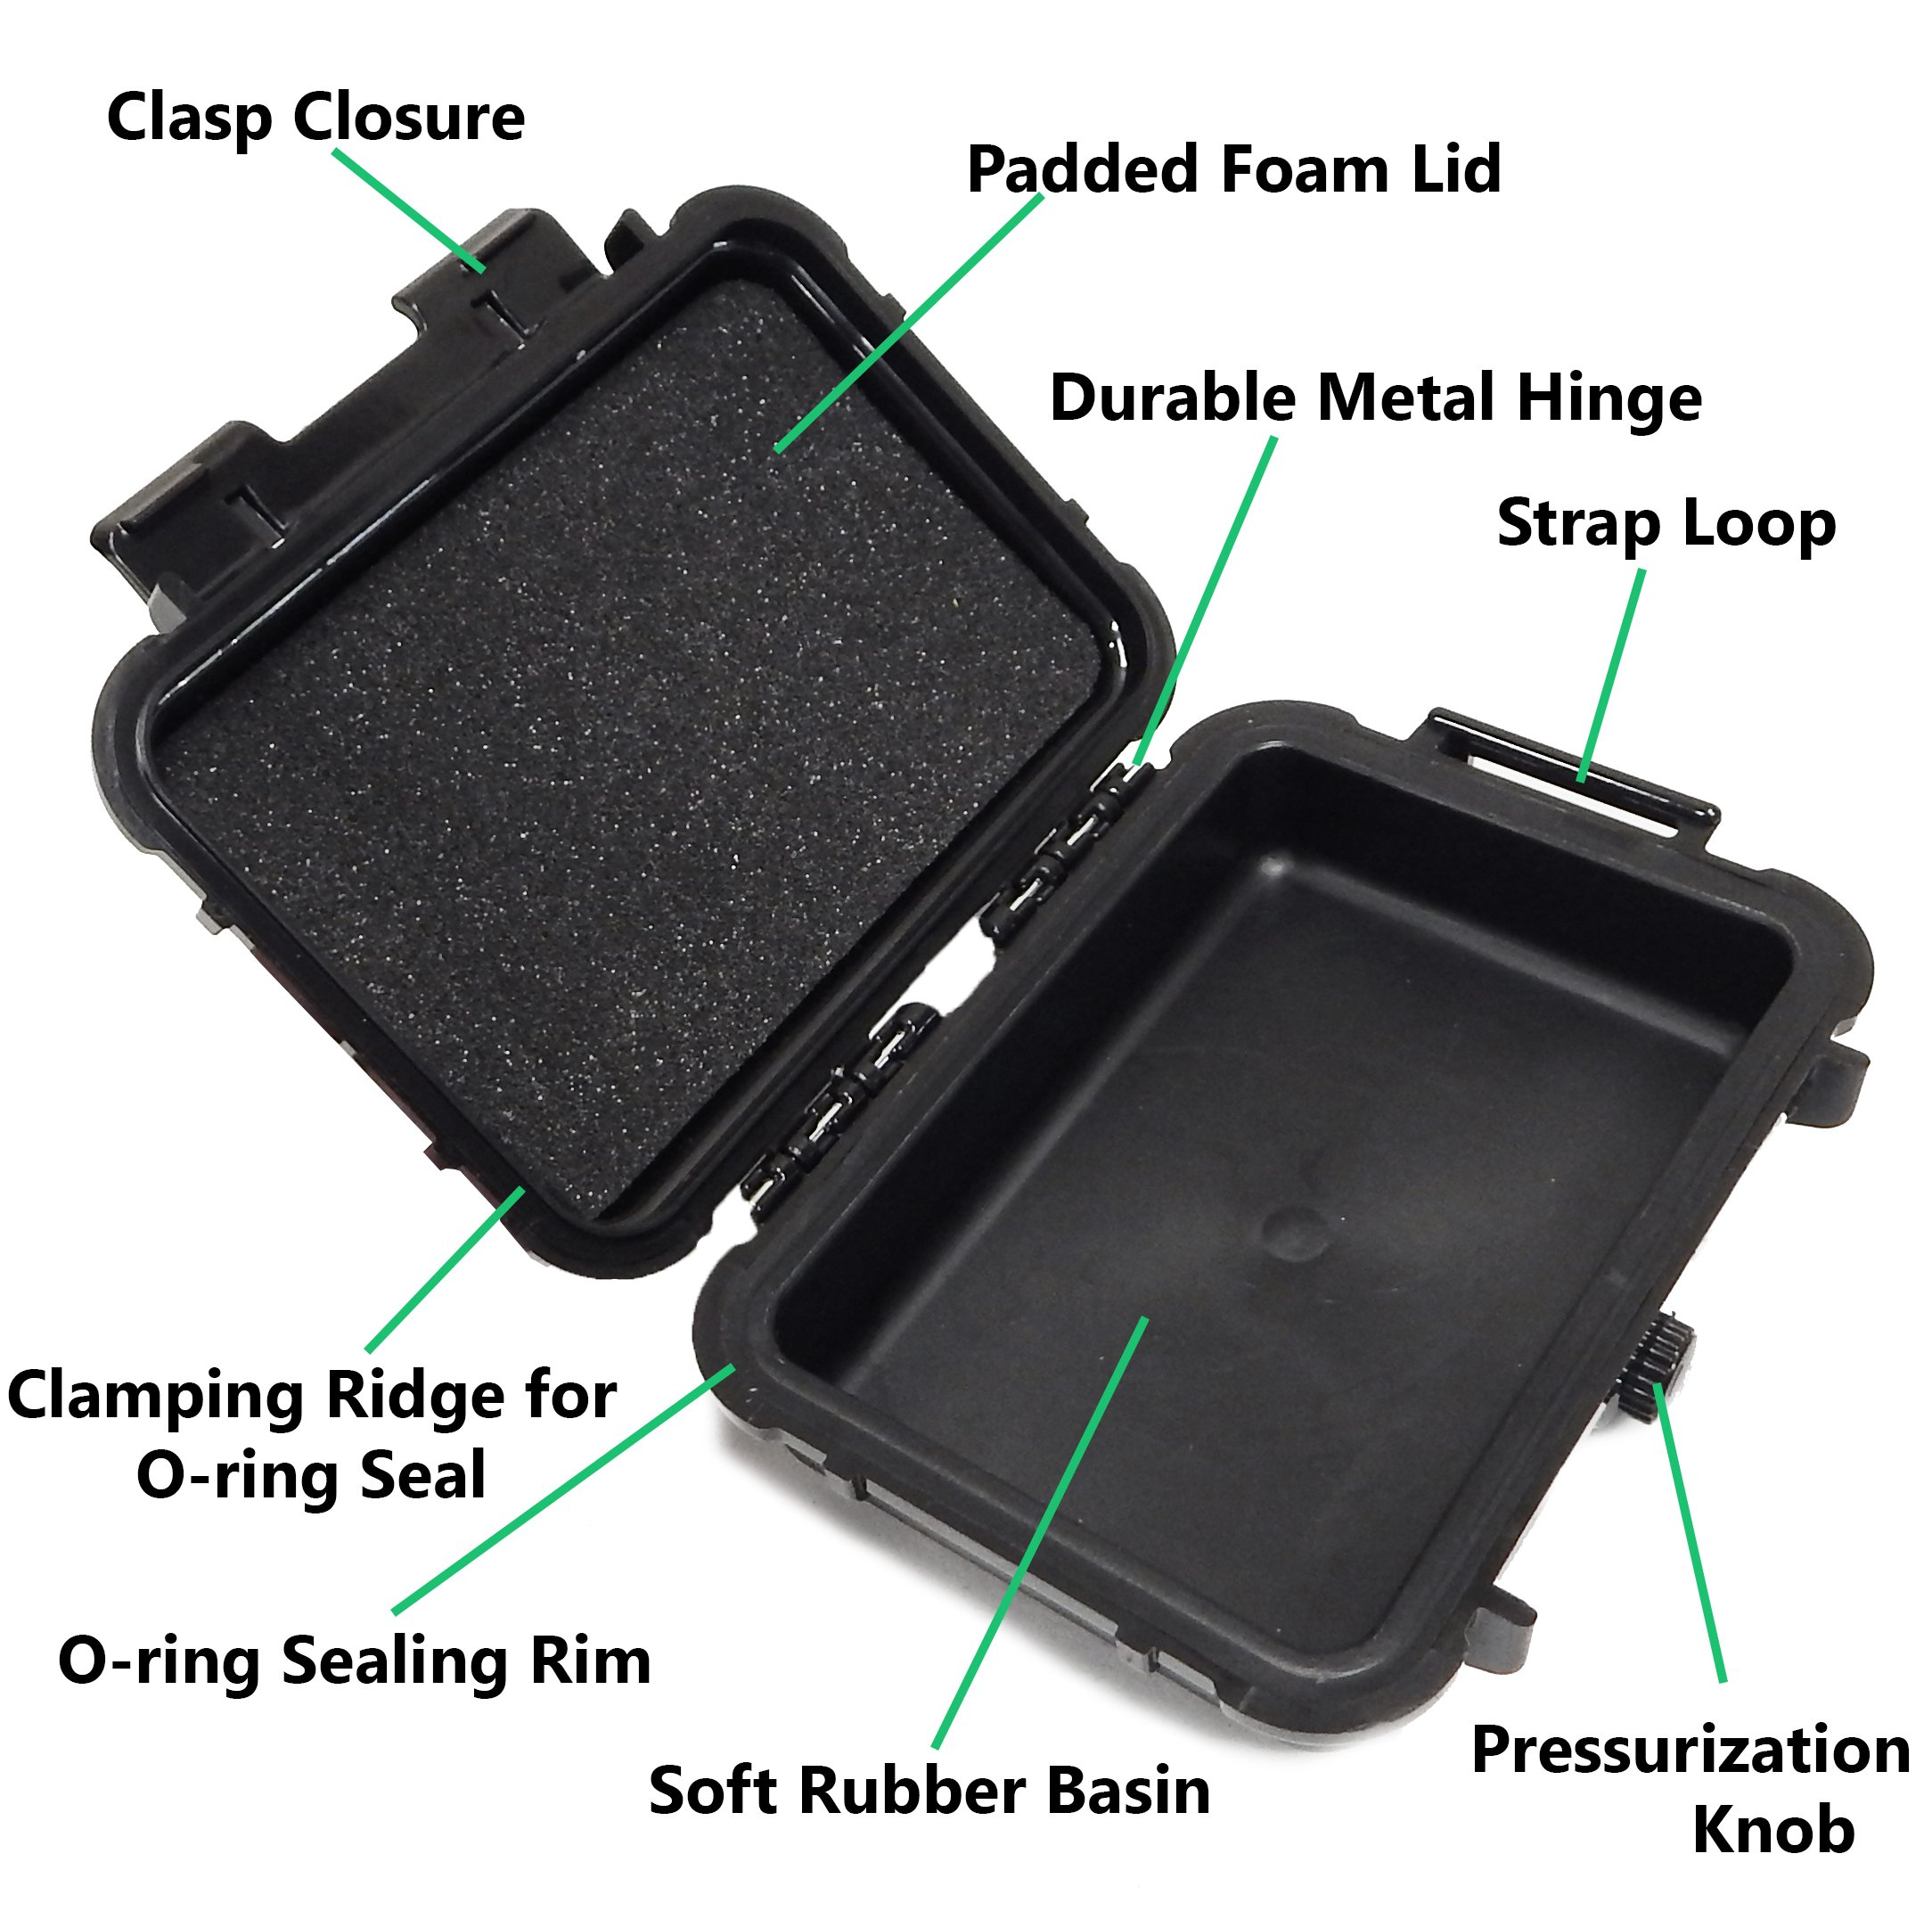 CASEMATIX Rugged Portable Printer Case Compatible with Polaroid Mint Printer and Polaroid Mint Pocket Printer Paper - Includes Waterproof CASE ONLY by CASEMATIX (Image #4)